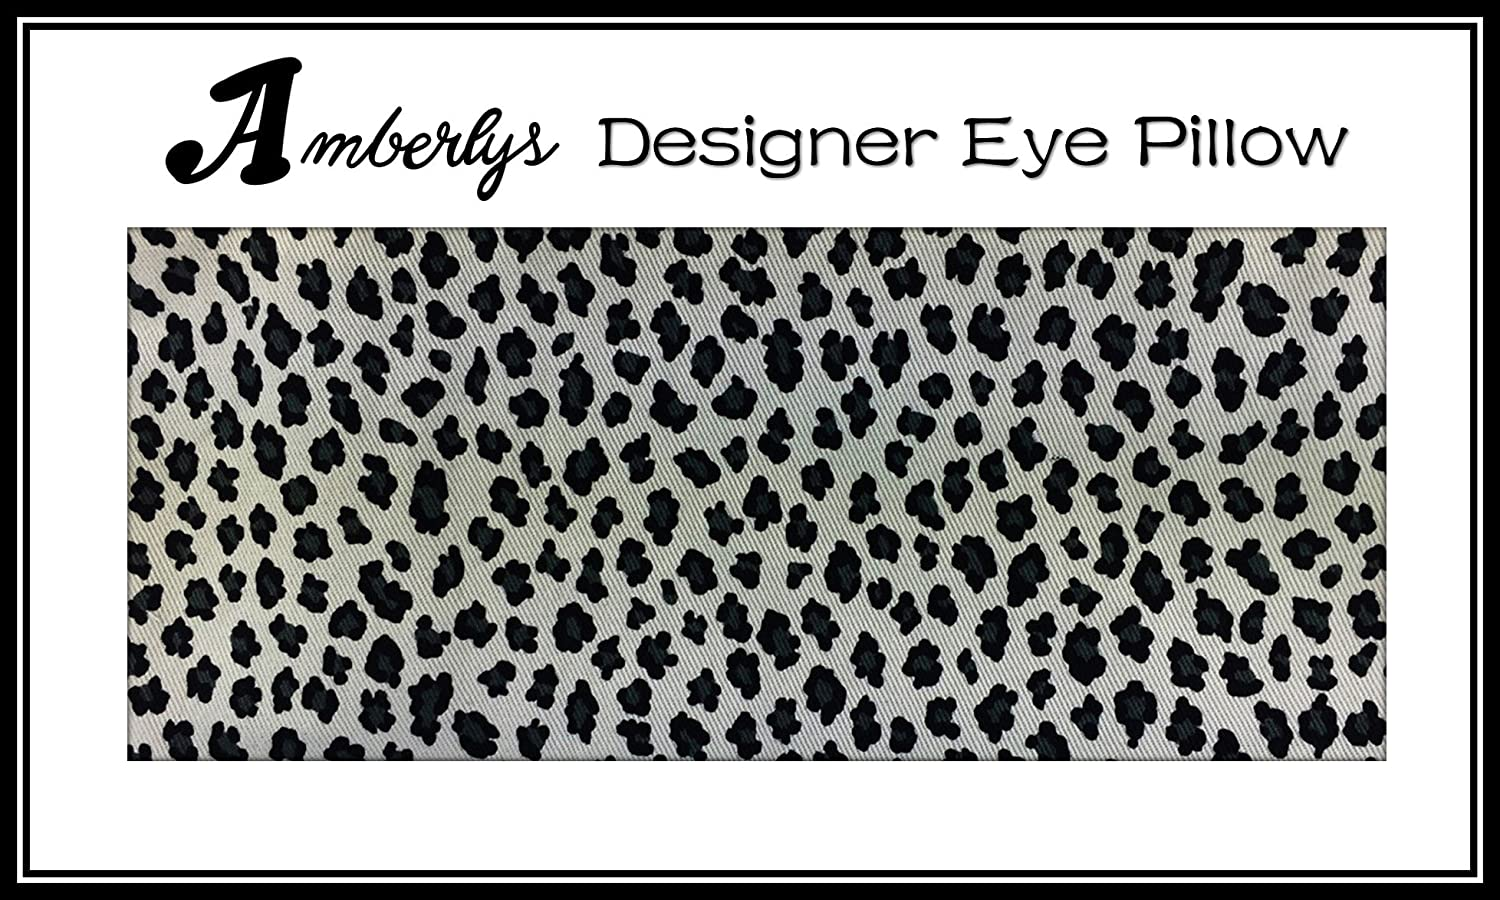 Amberly Lavender Yoga /& Mediation Eye Pillow with Washable Covers for Relaxing Insomonia Relief